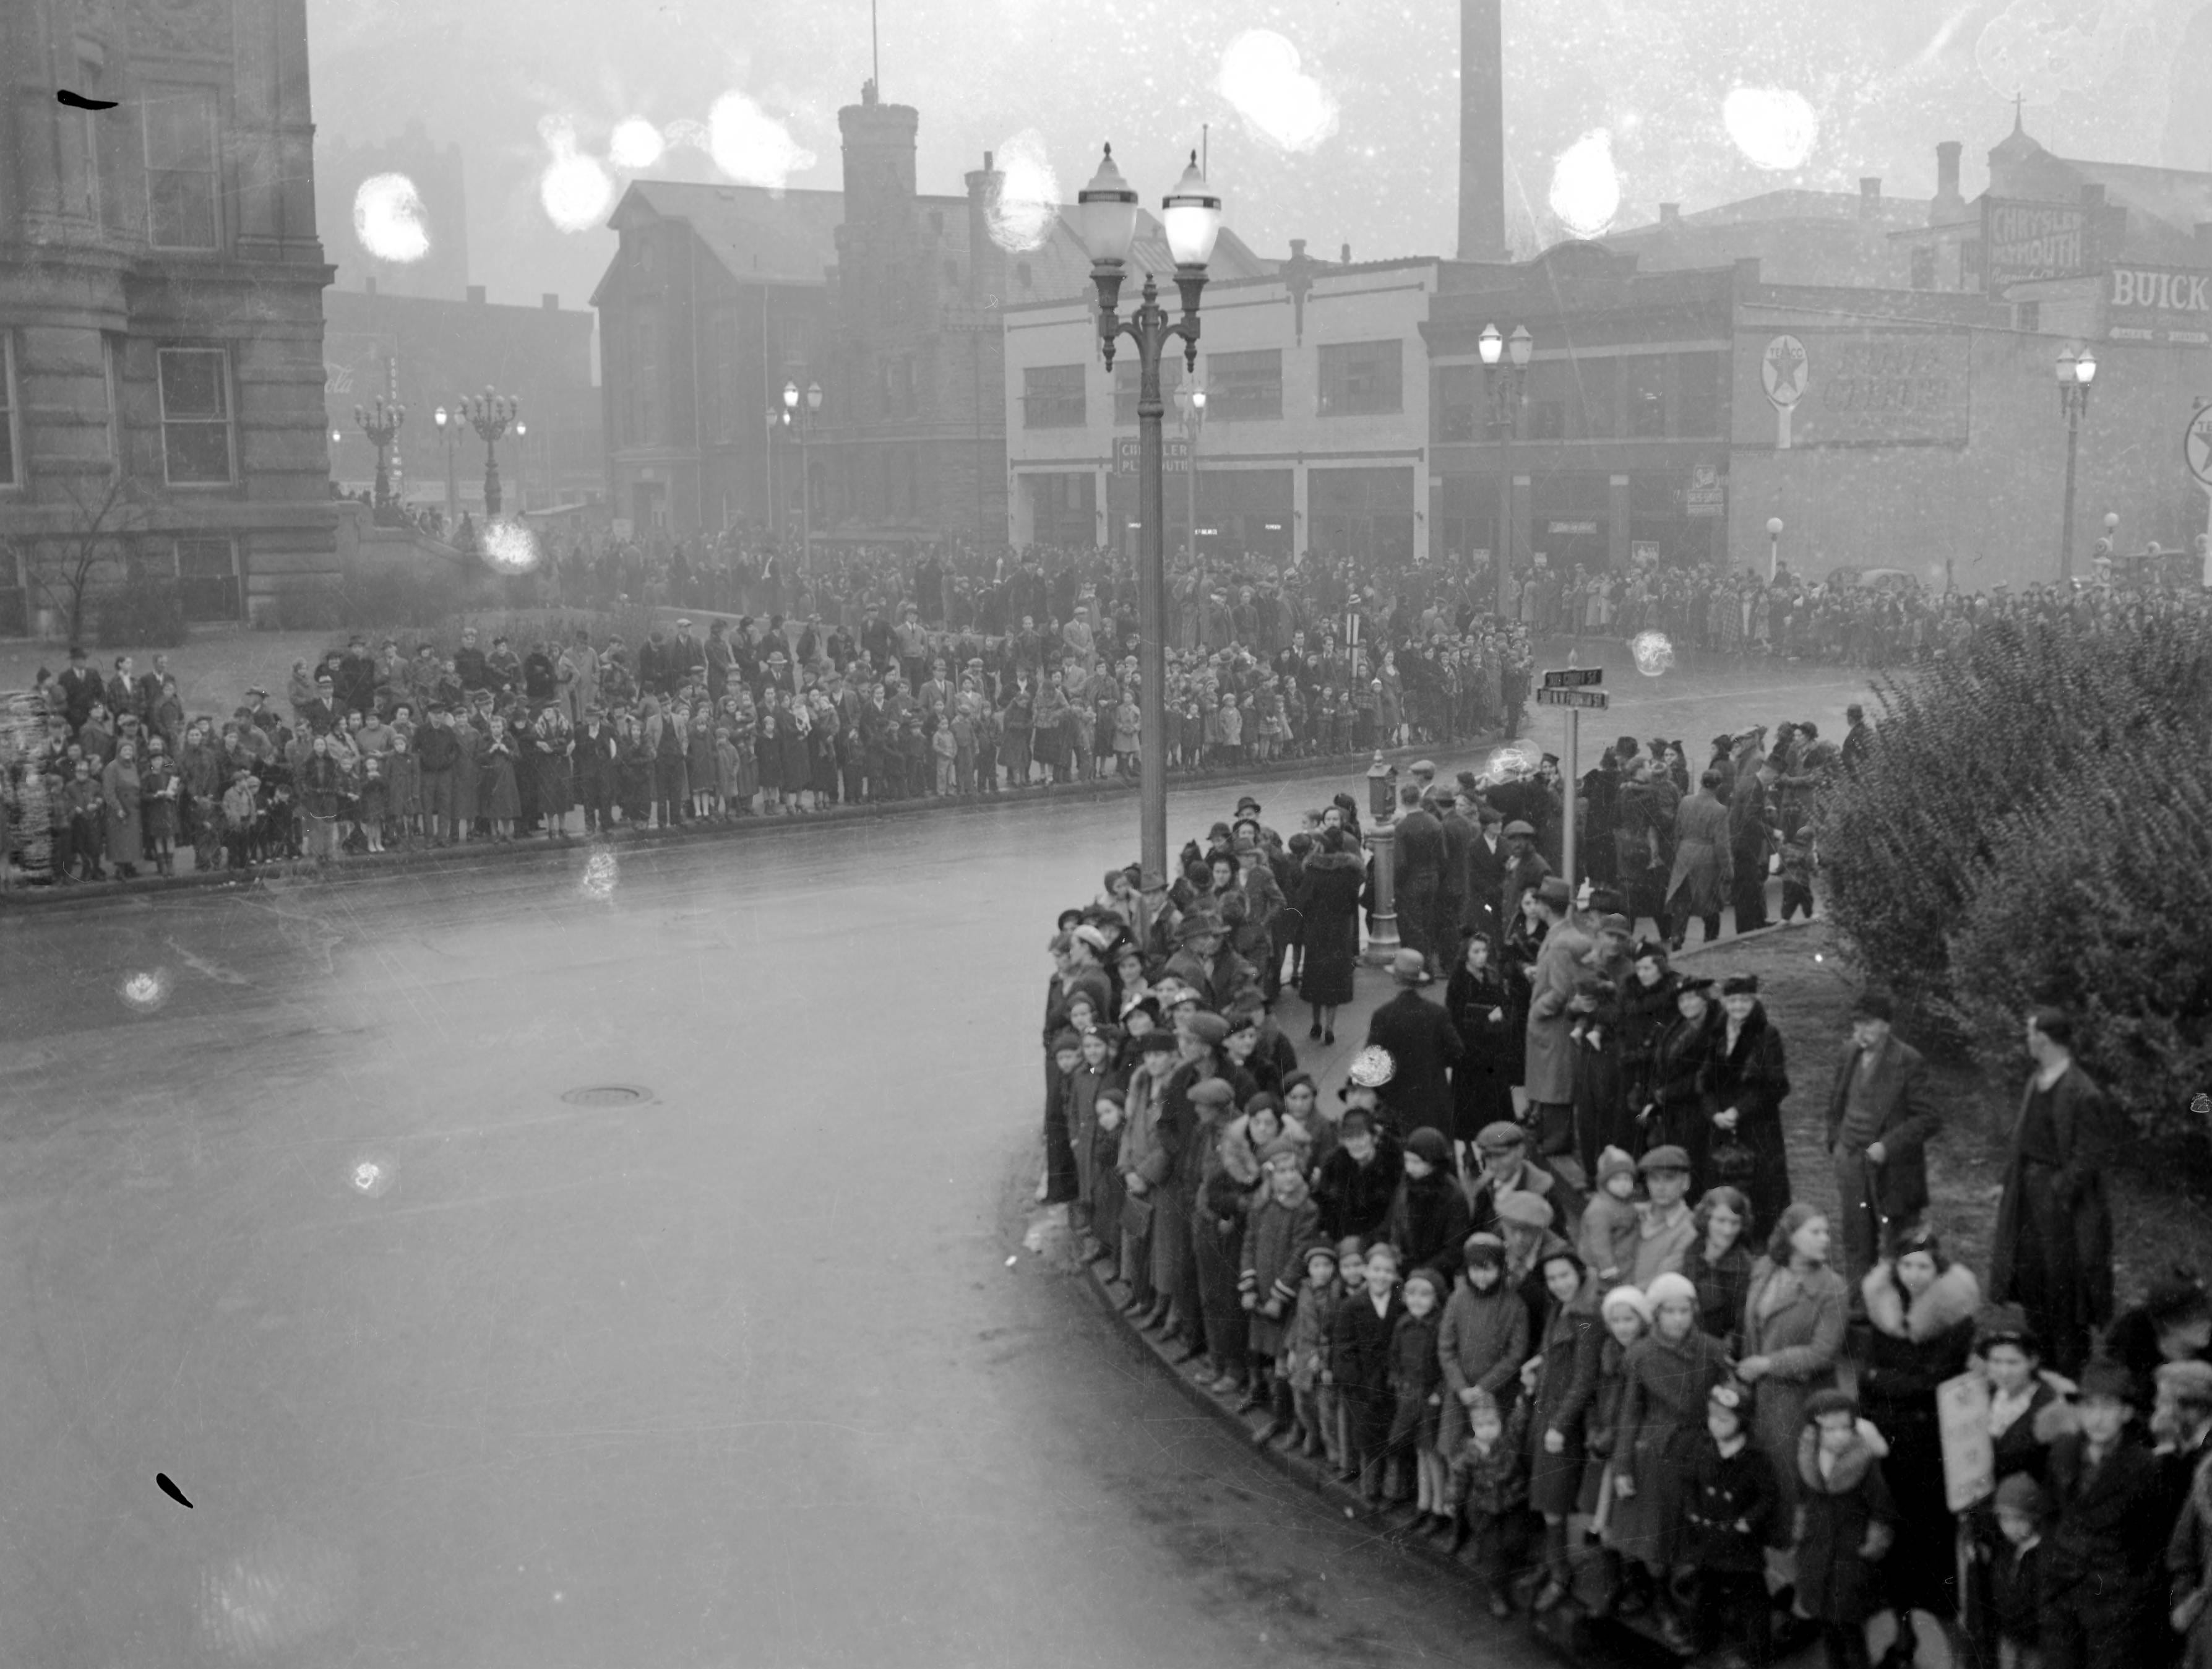 Crowds awaiting WPA Christmas parade at Court St. and NW 4th St.  The large building on the left is the Vanderburgh County Court House and across the street is the Lincoln Motor Co. (they sold Buicks) at 218 NW 4th St.